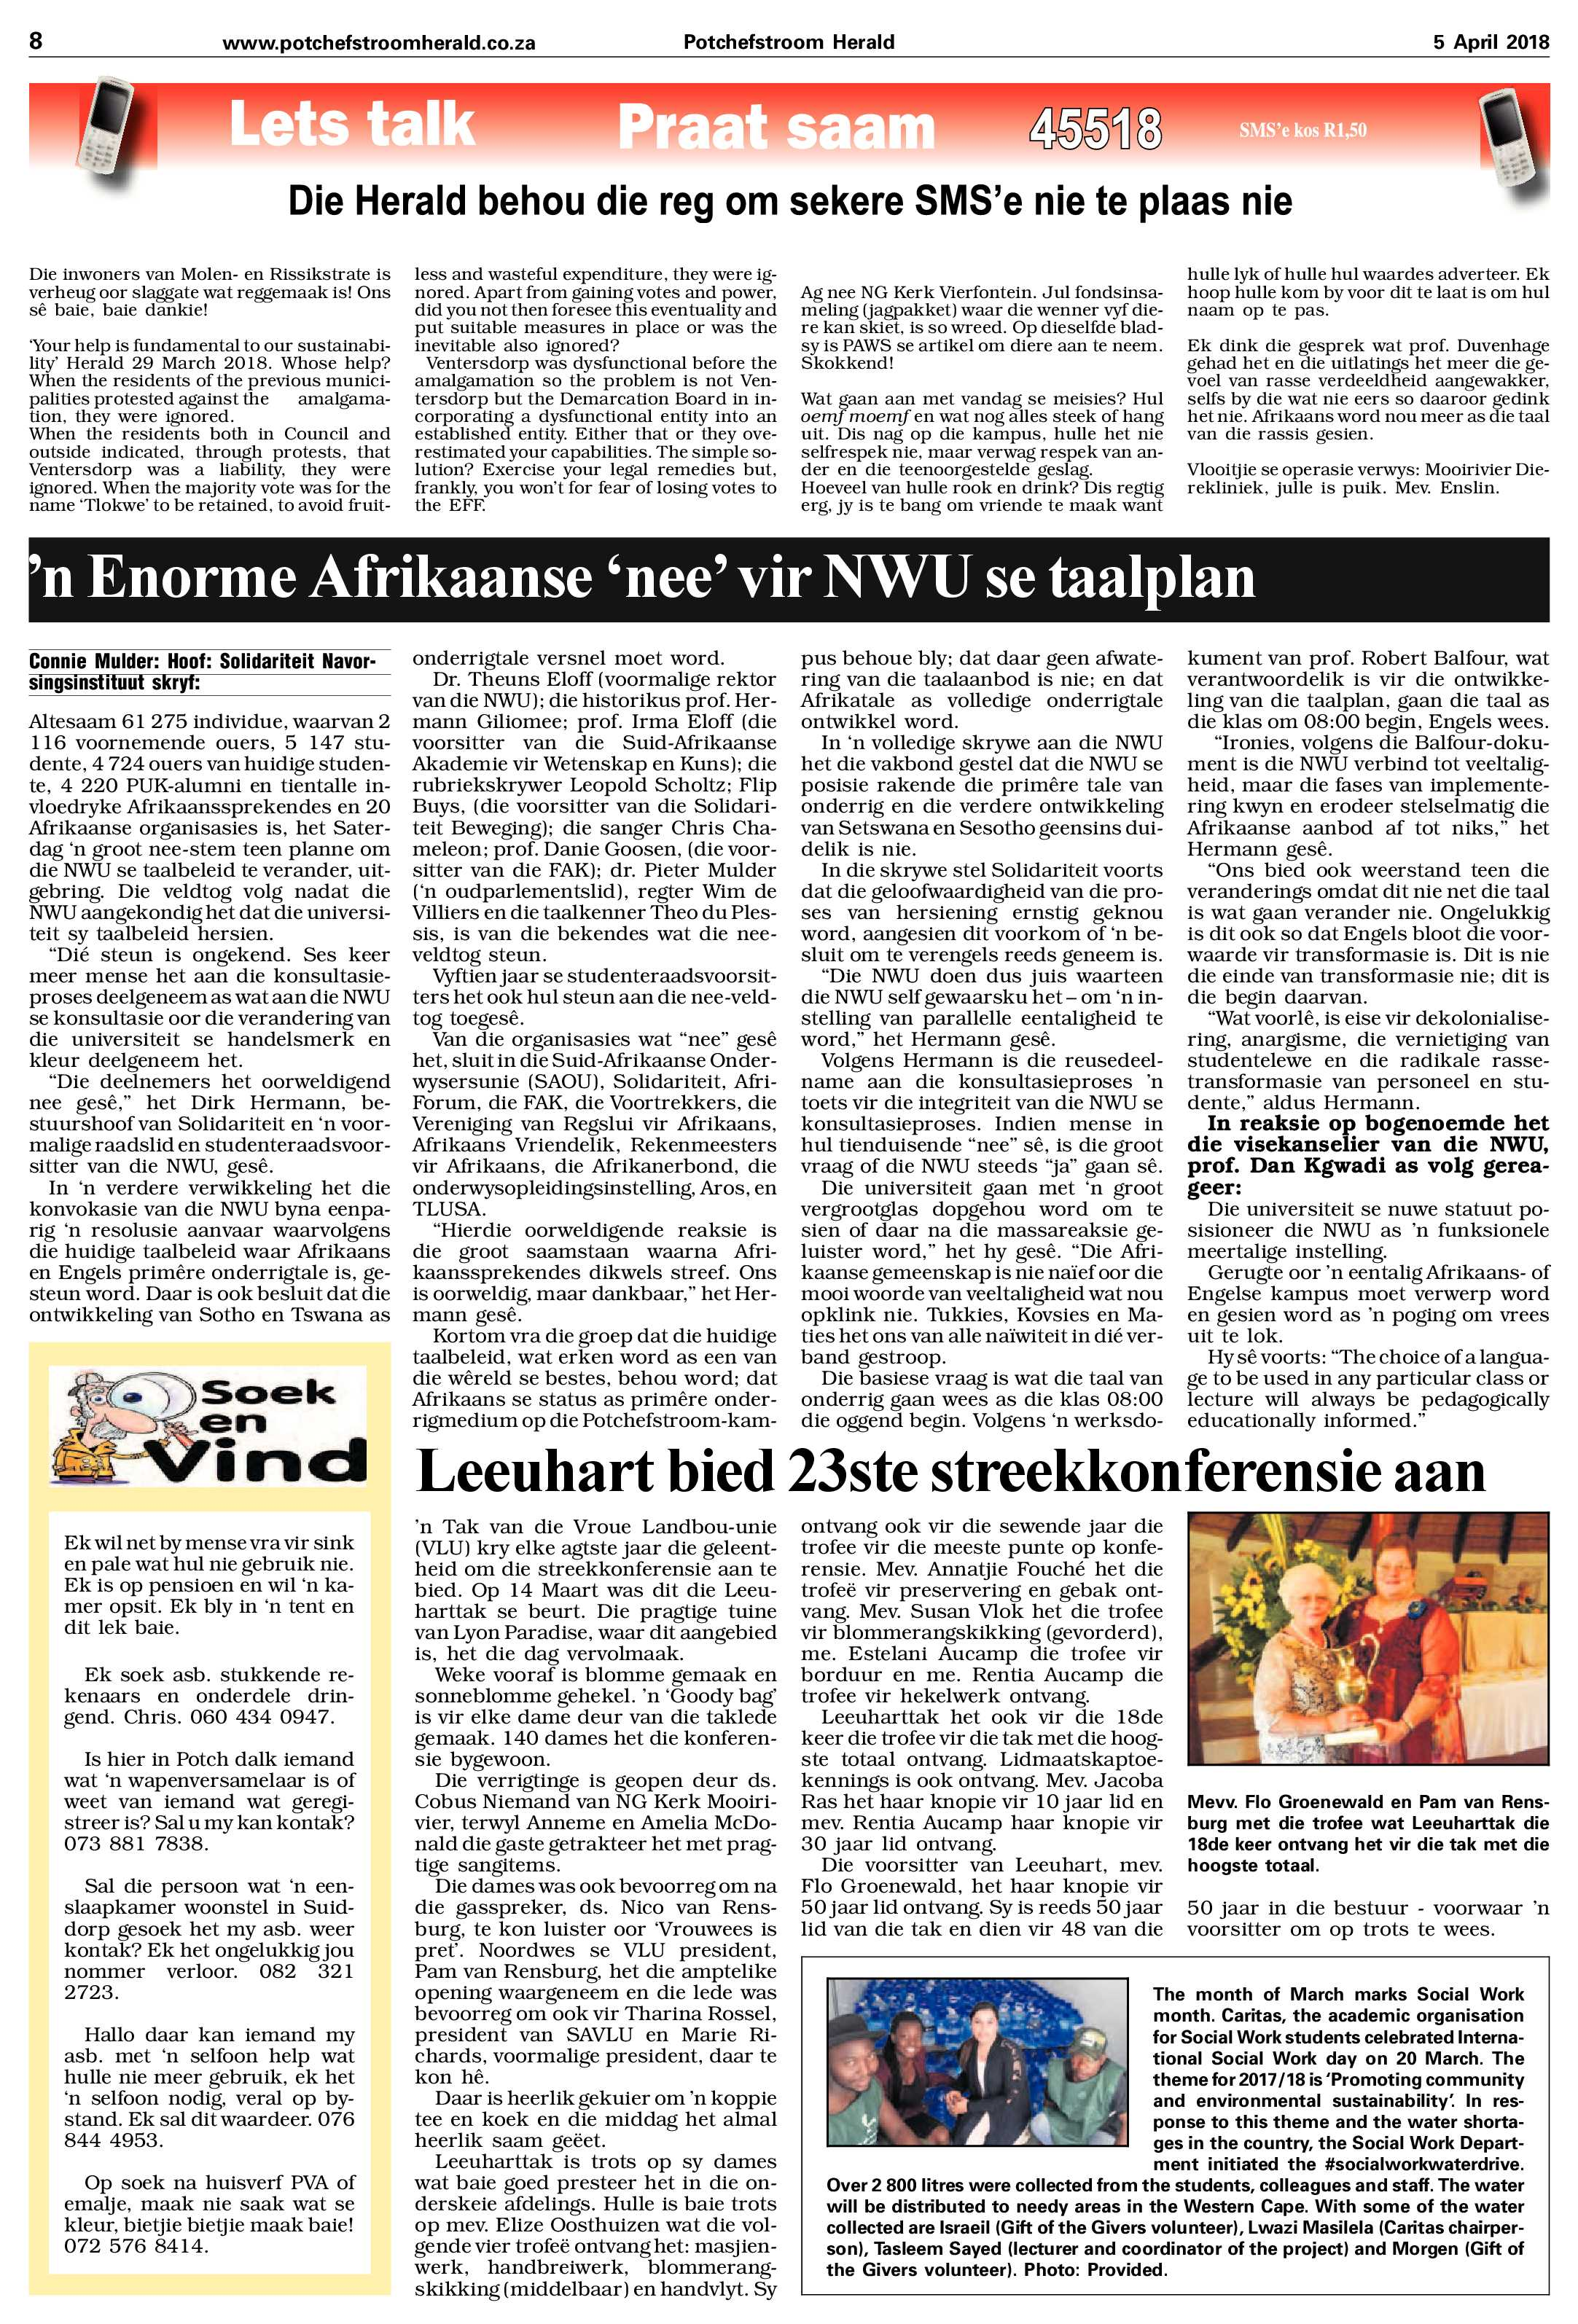 5-april-2018-epapers-page-8